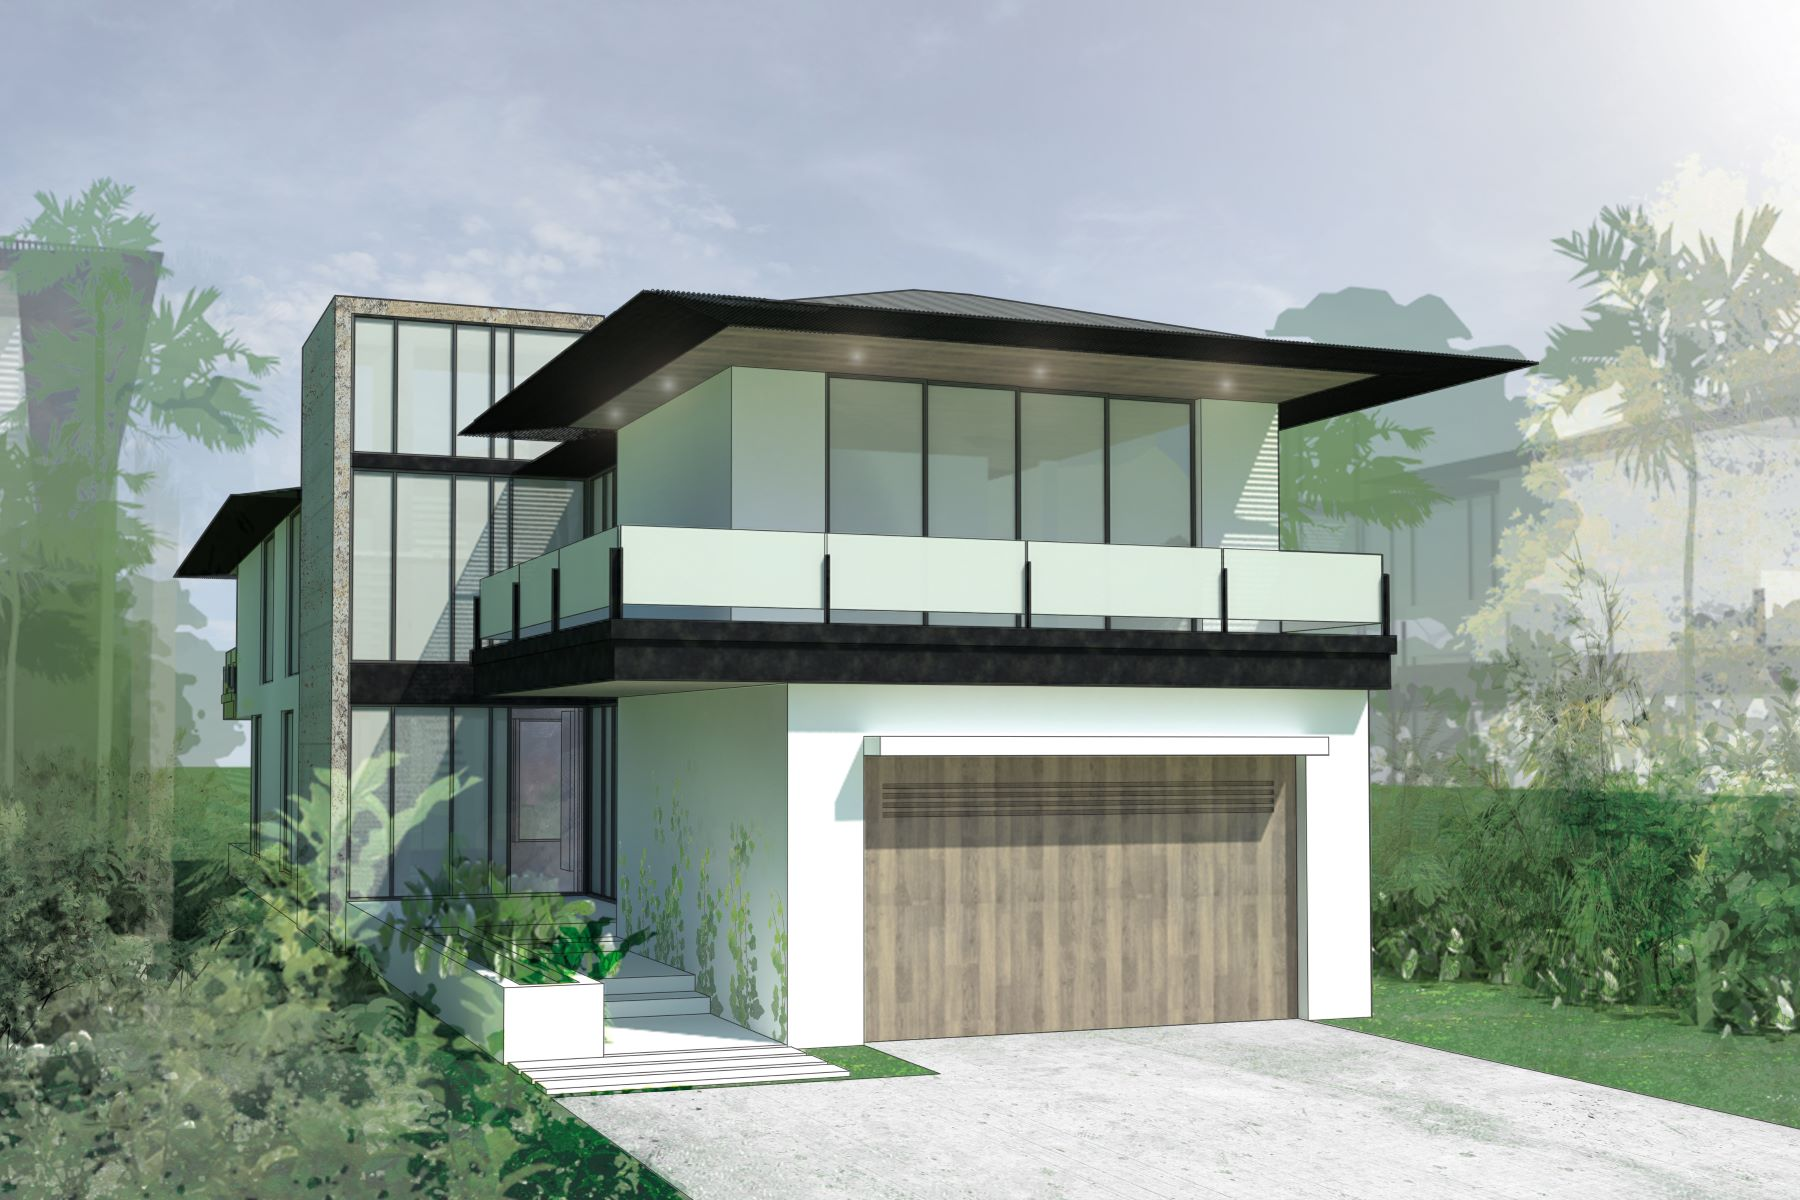 獨棟家庭住宅 為 出售 在 Direct Riverfront New Construction 4844 S Harbor Drive Vero Beach, 佛羅里達州 32967 美國